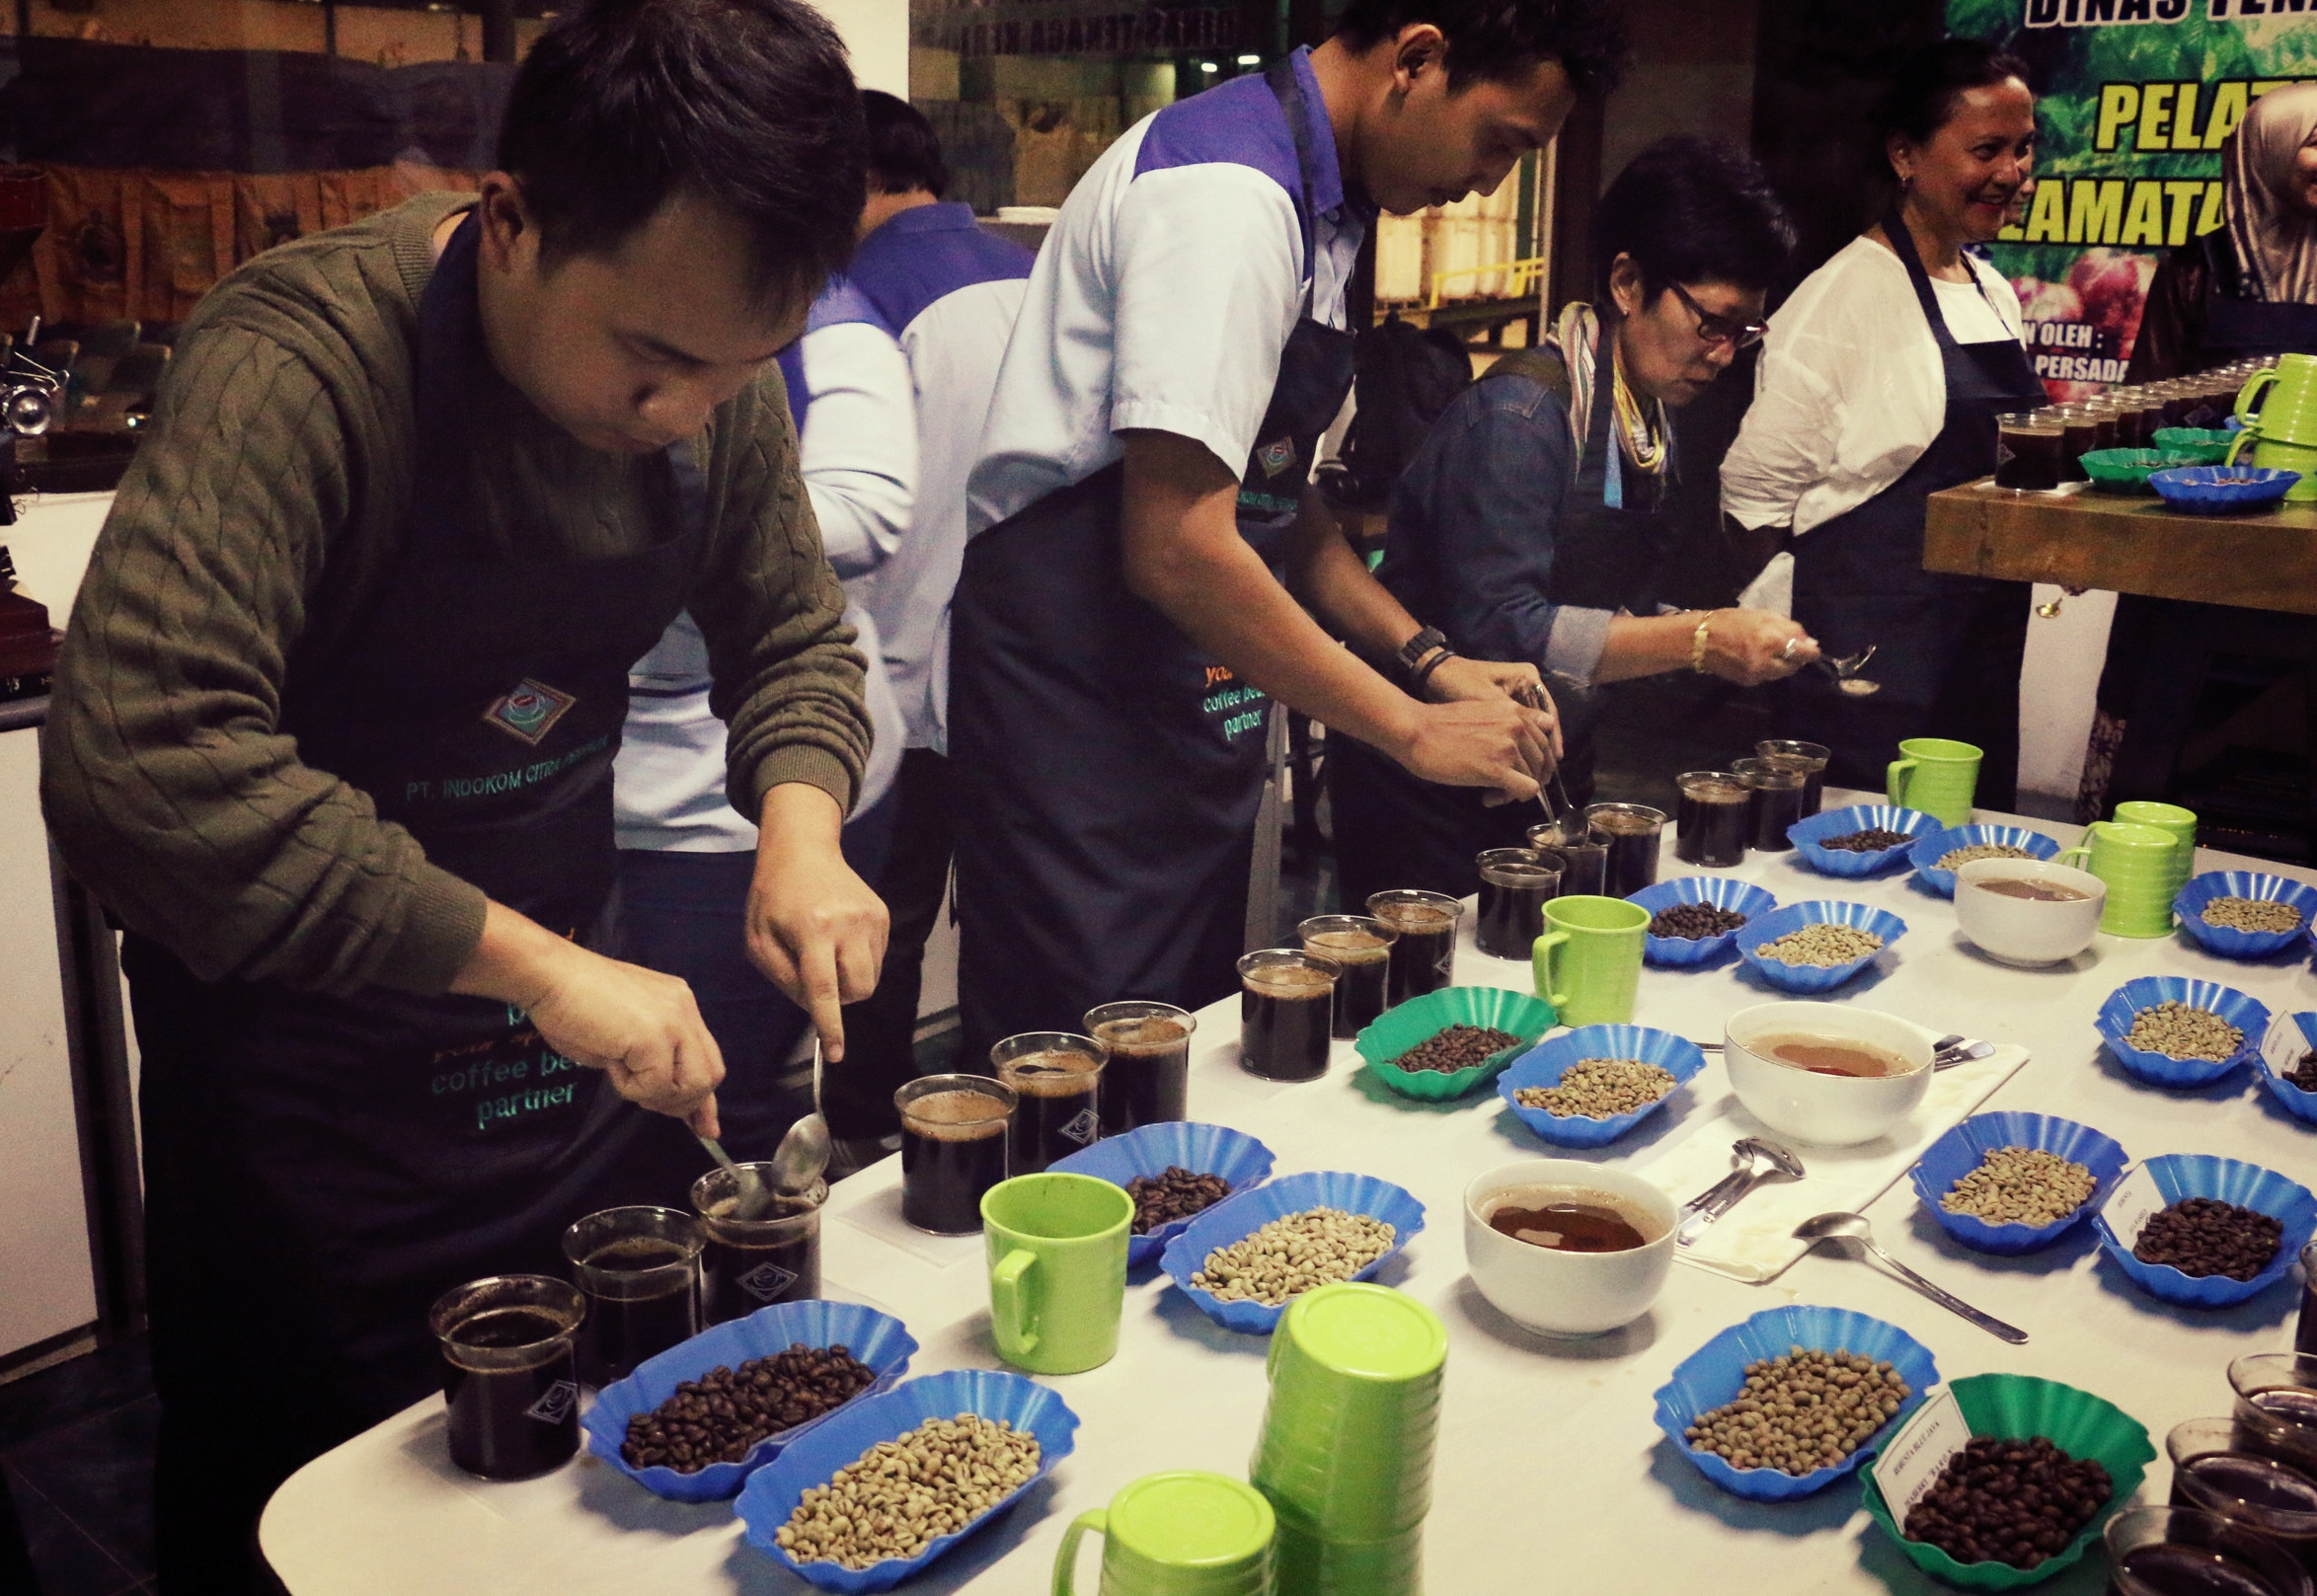 Cleaning the Cupping